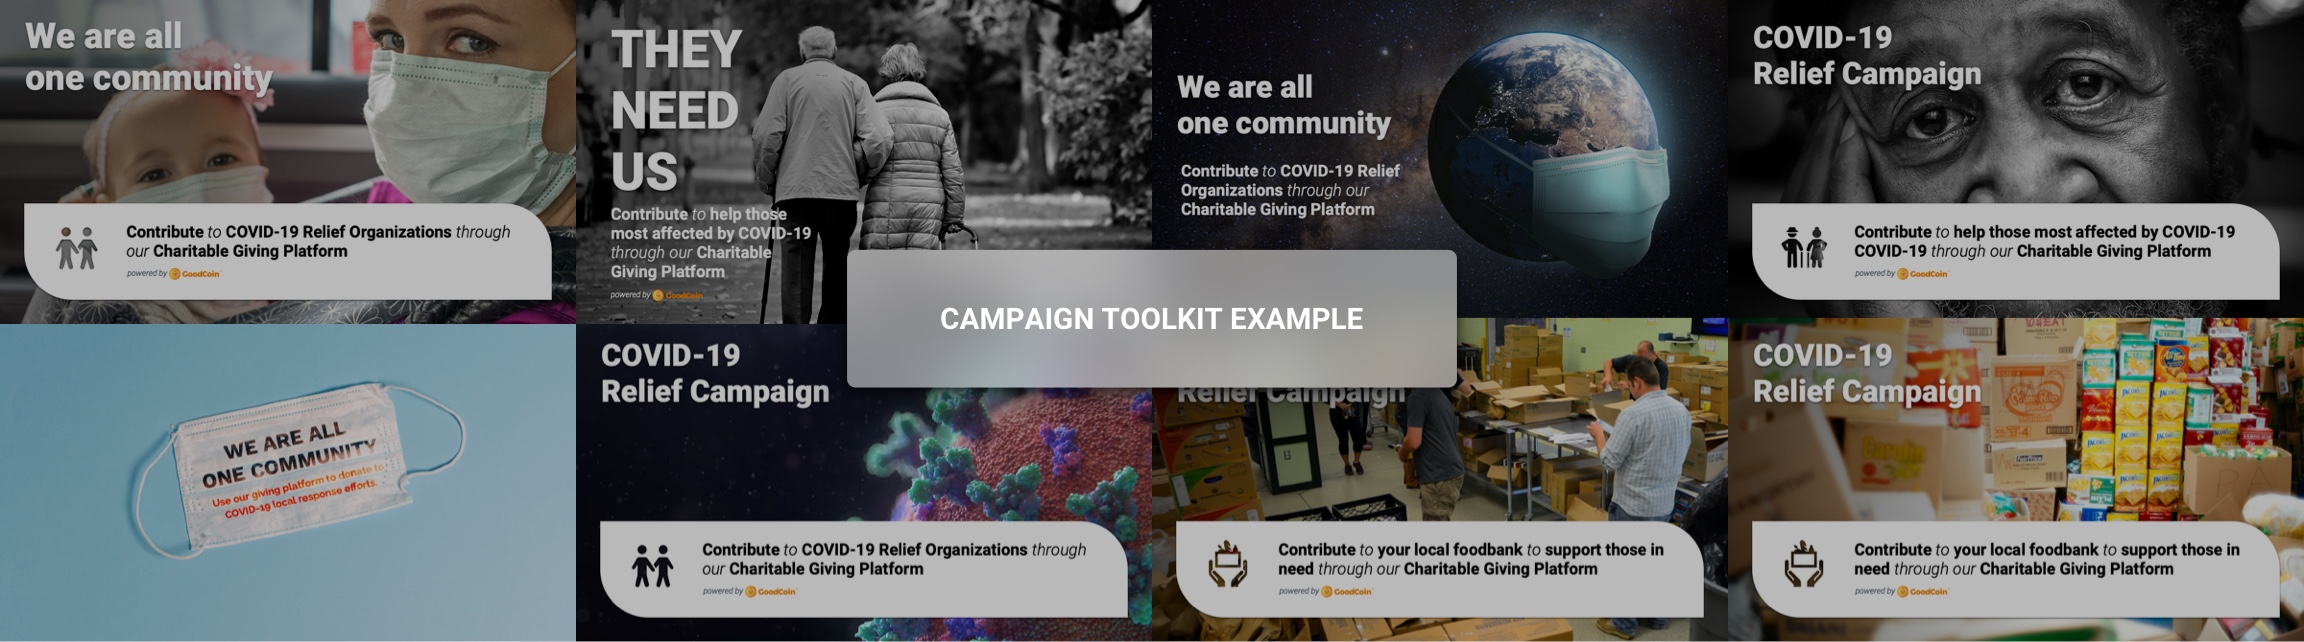 Campaign toolkit example